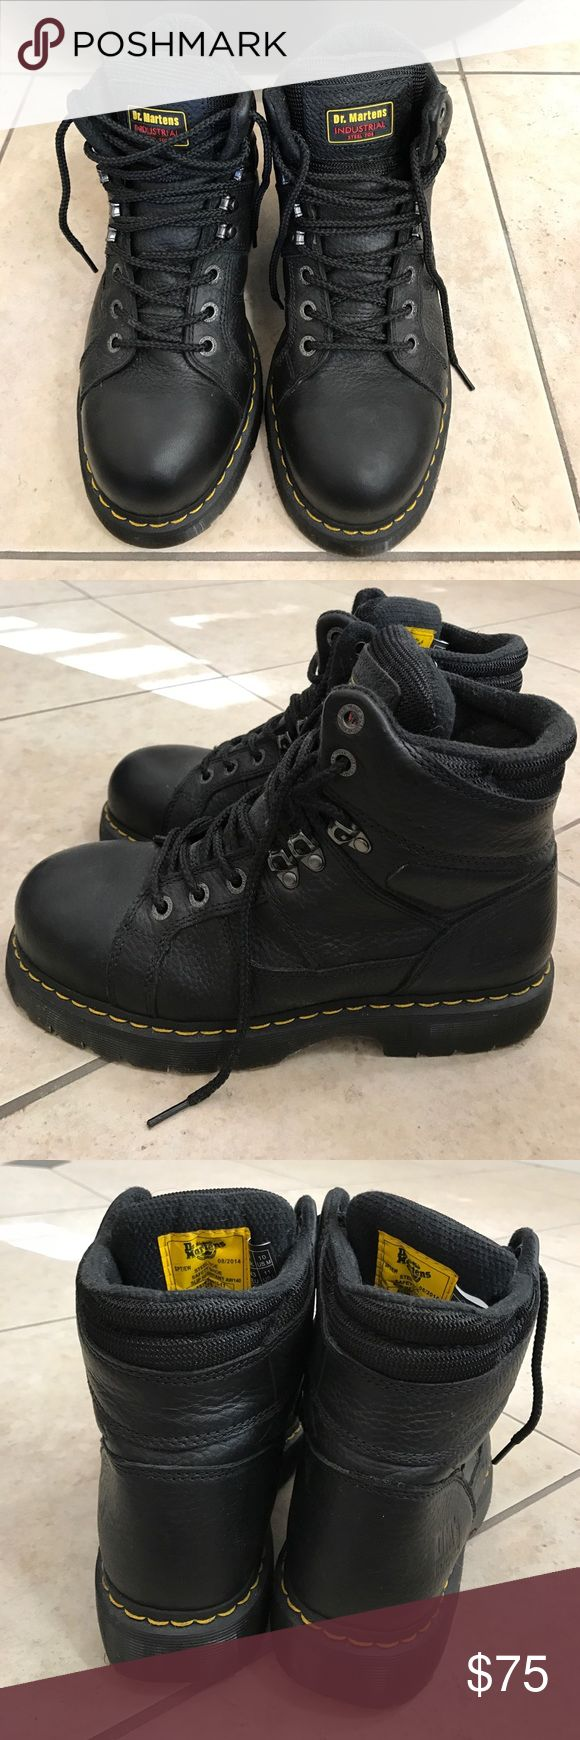 Brand new Dr. Martins industrial steel toe boots Brand new! Never worn. My boyfriend got these and they didn't fit him and he never returned them. They have just been in the bottom of his closet. Make me an offer. Dr. Martens Shoes Boots